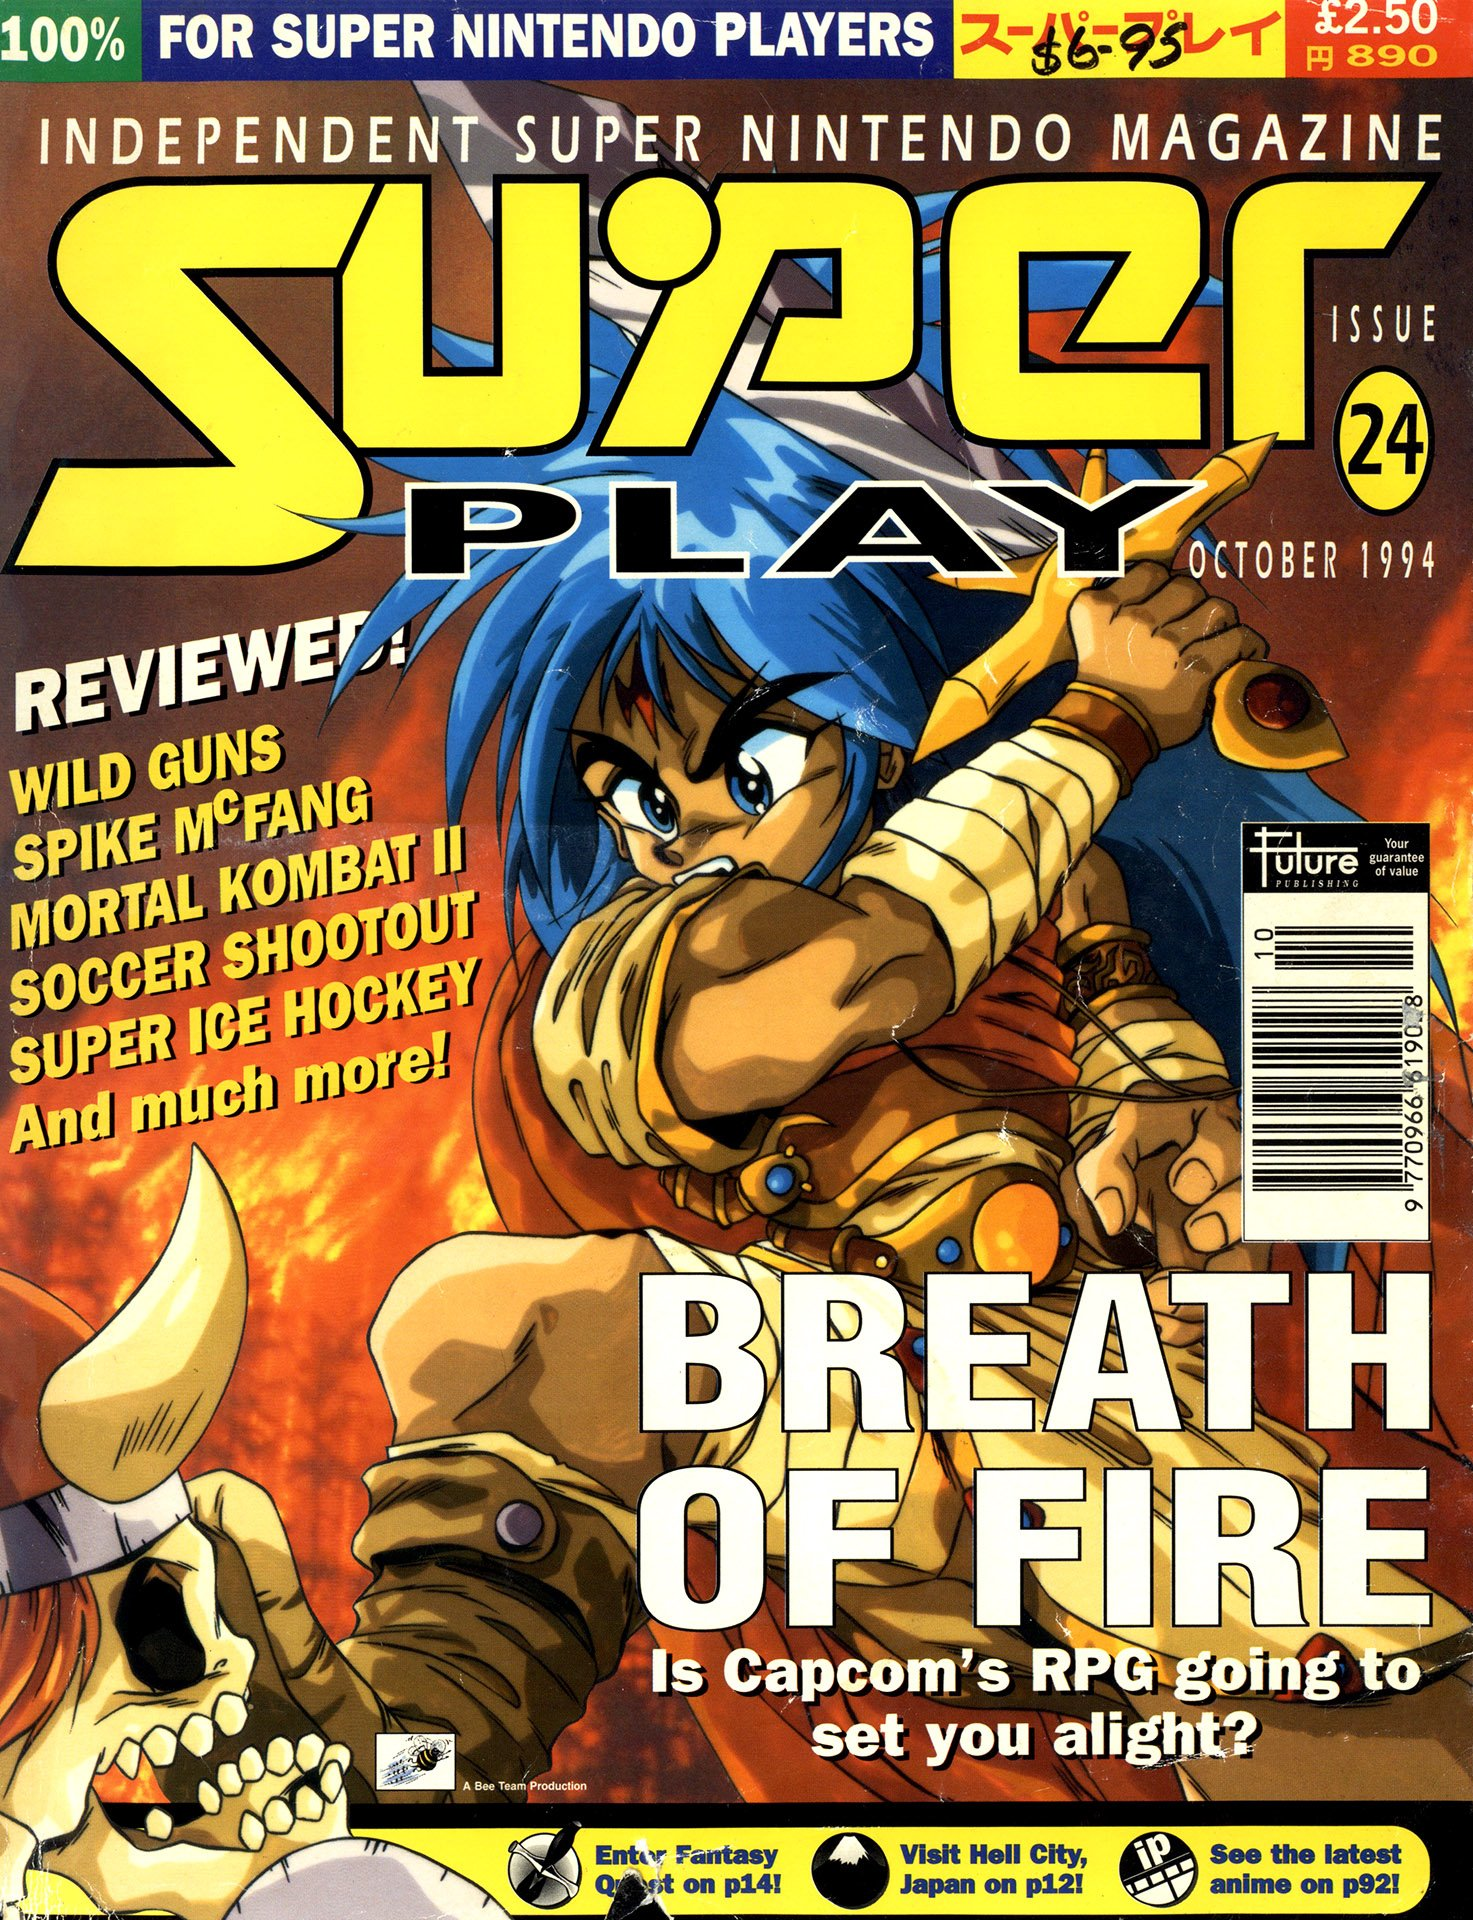 Super Play Issue 24 (October 1994)